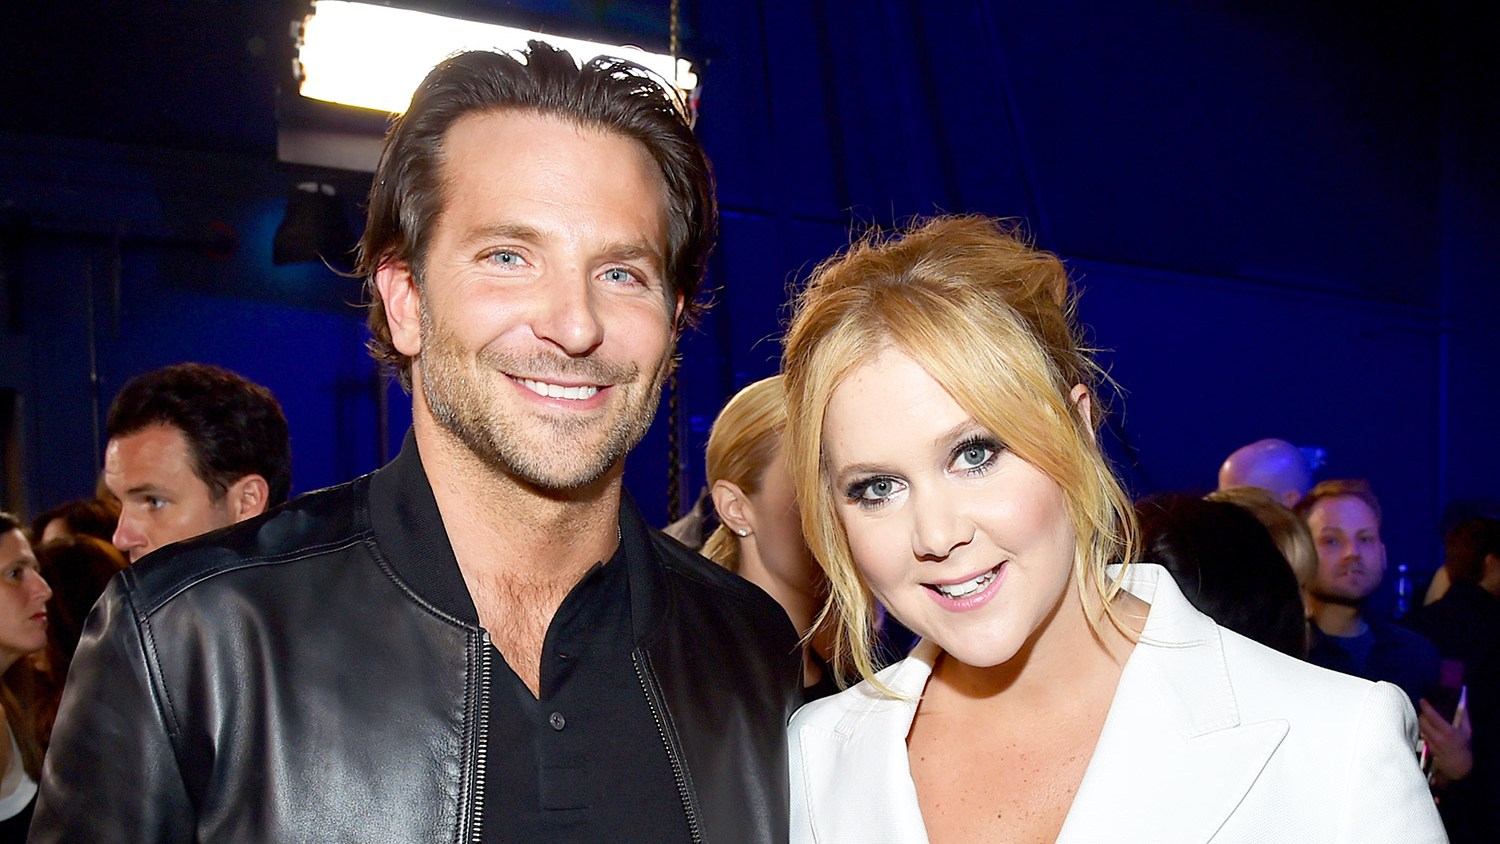 Bradley Cooper and Amy Schumer